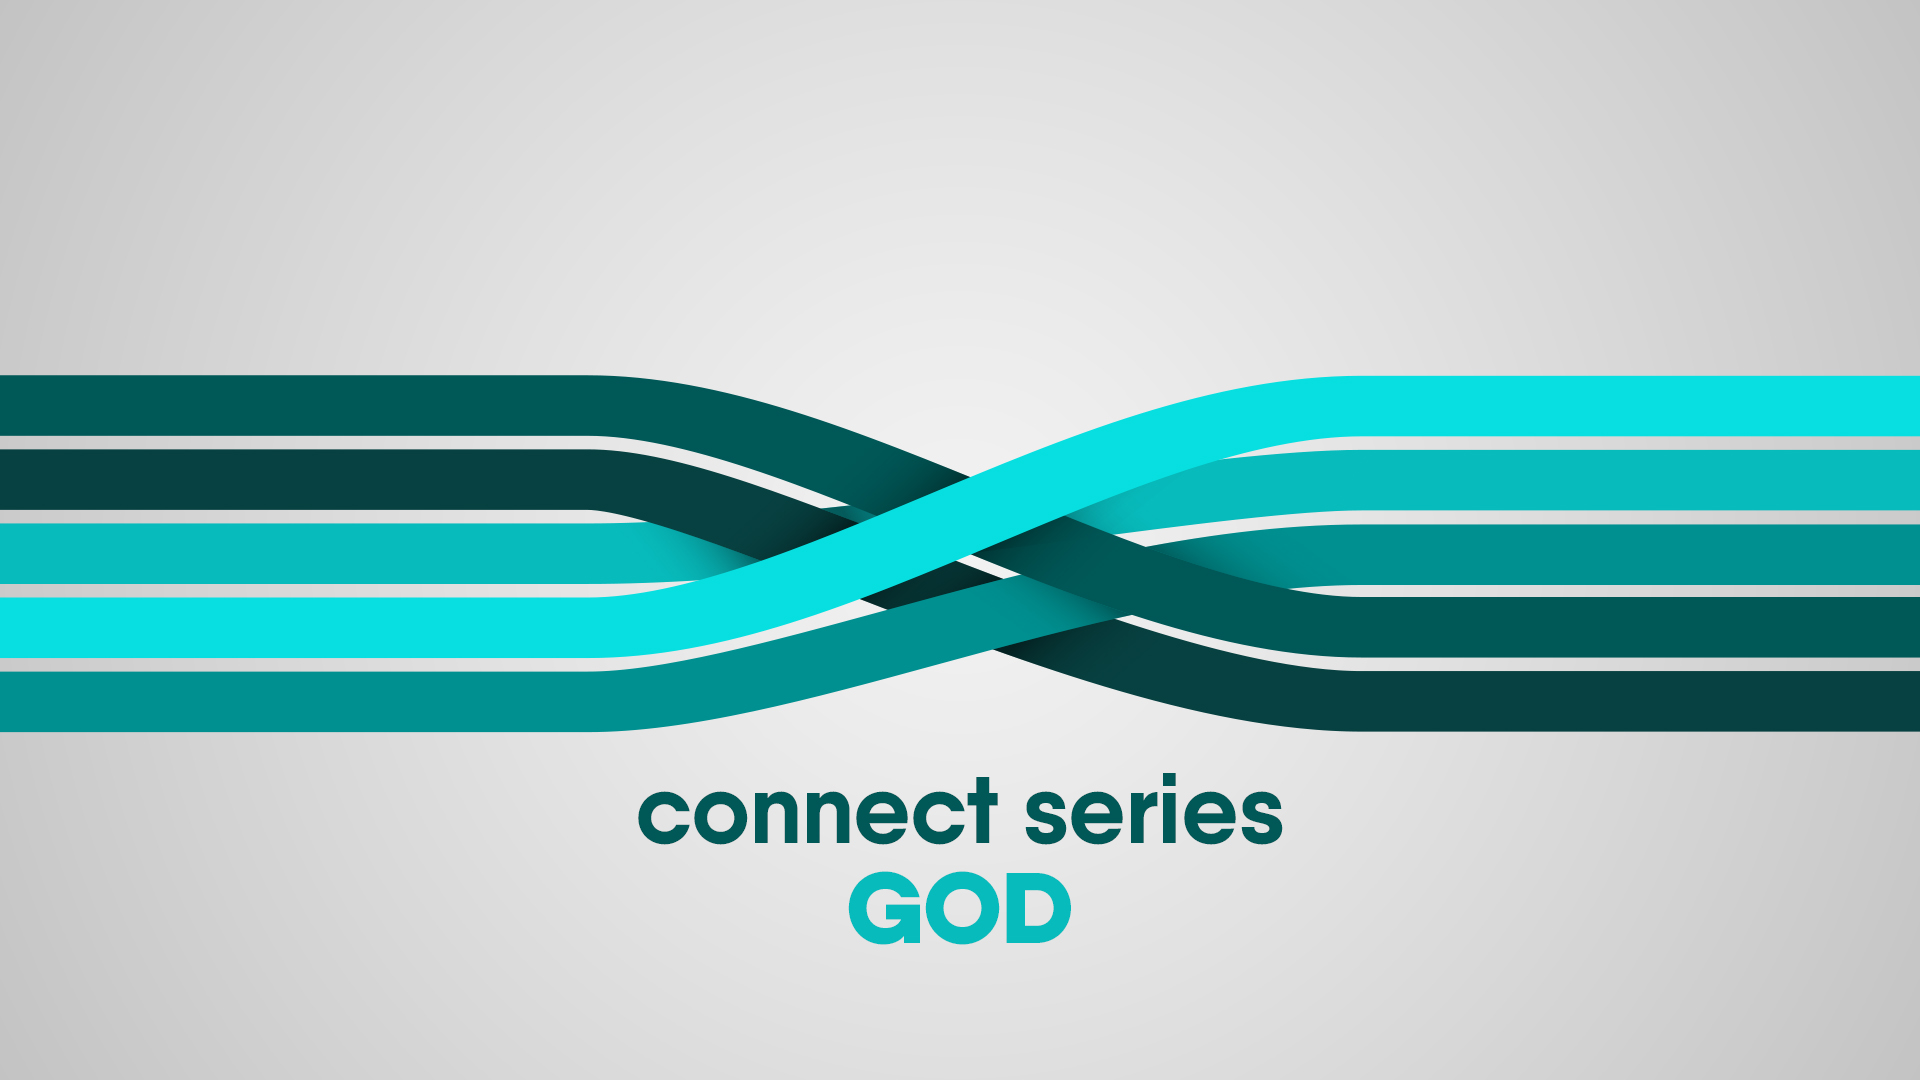 Connect Series - God